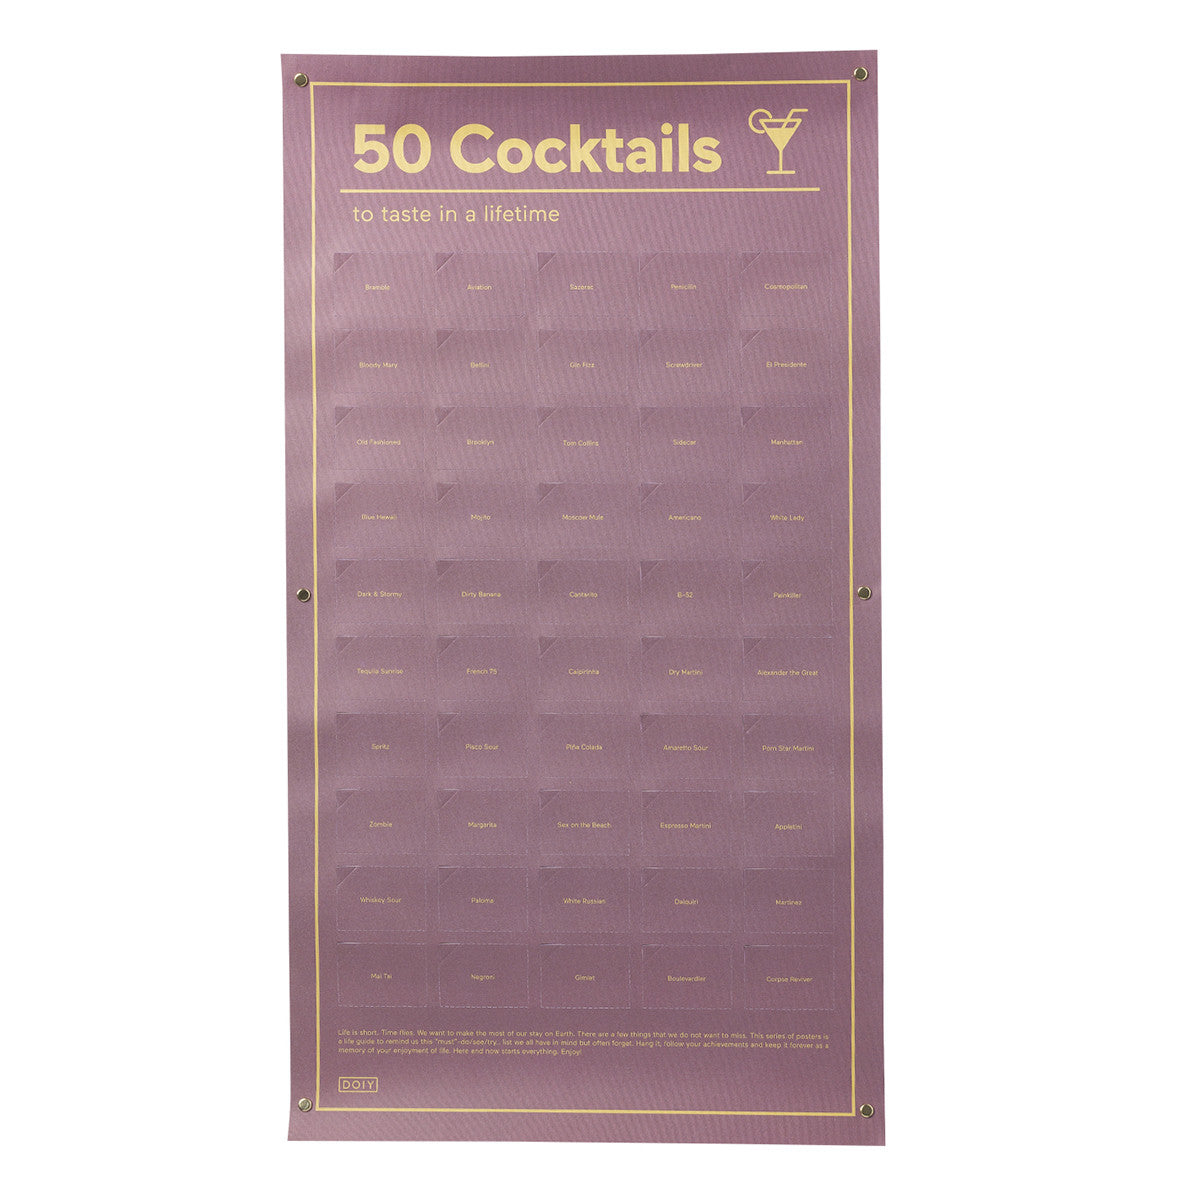 DOIY 50 Cocktails To Taste In A Lifetime Poster